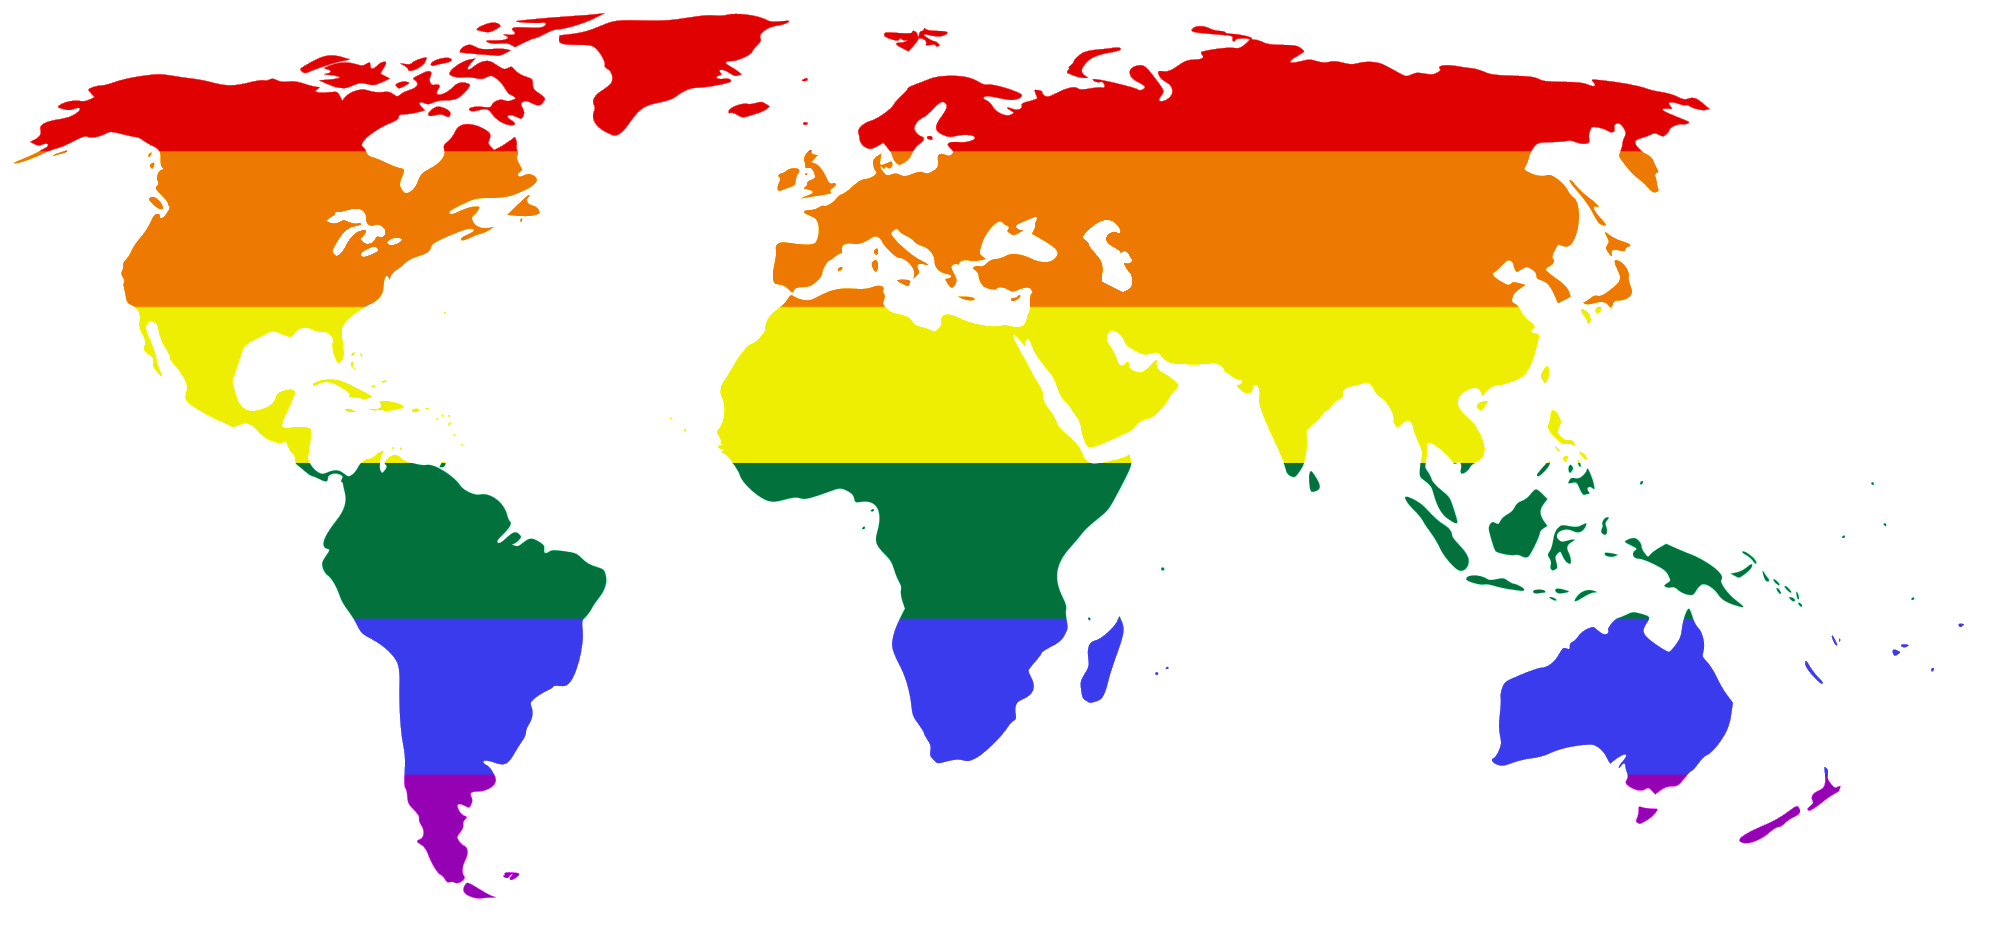 LGBT Flag map of the Worldpng